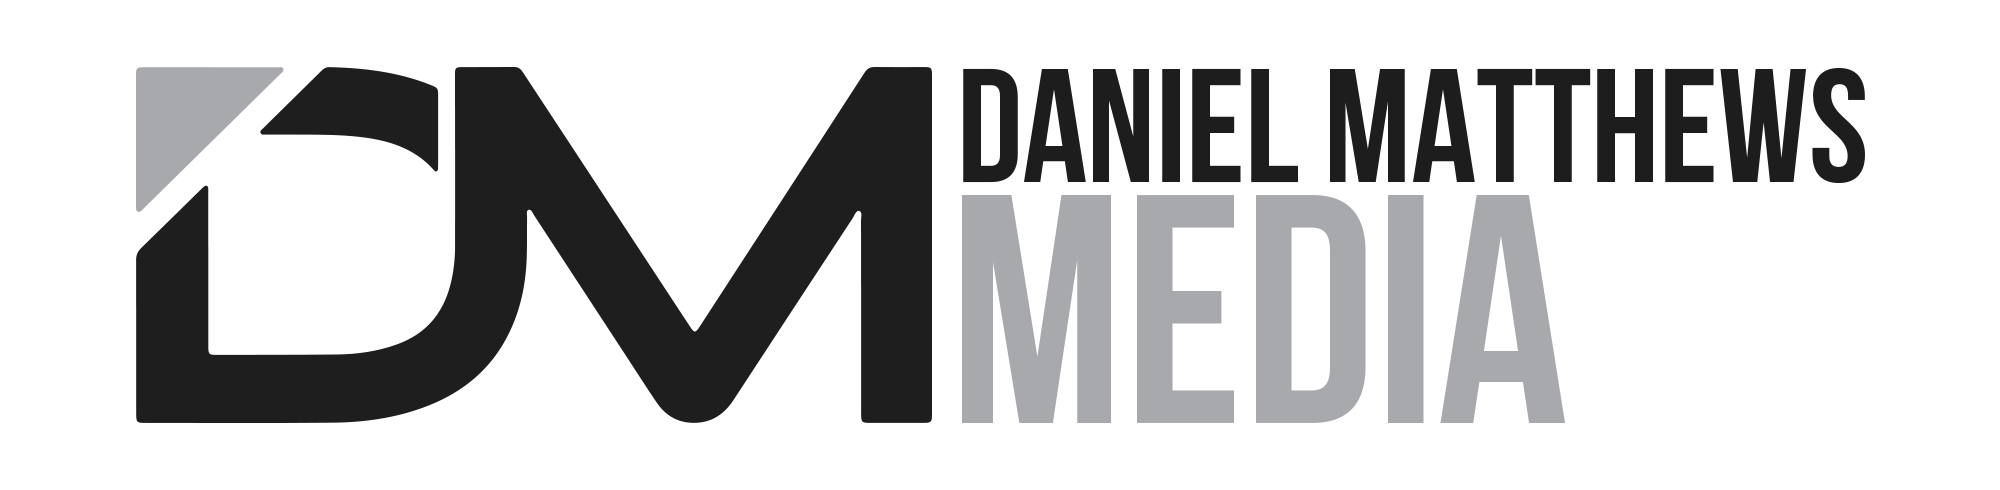 Daniel Matthews Media Delivers Online Customizable Scaling Solutions for Businesses 1